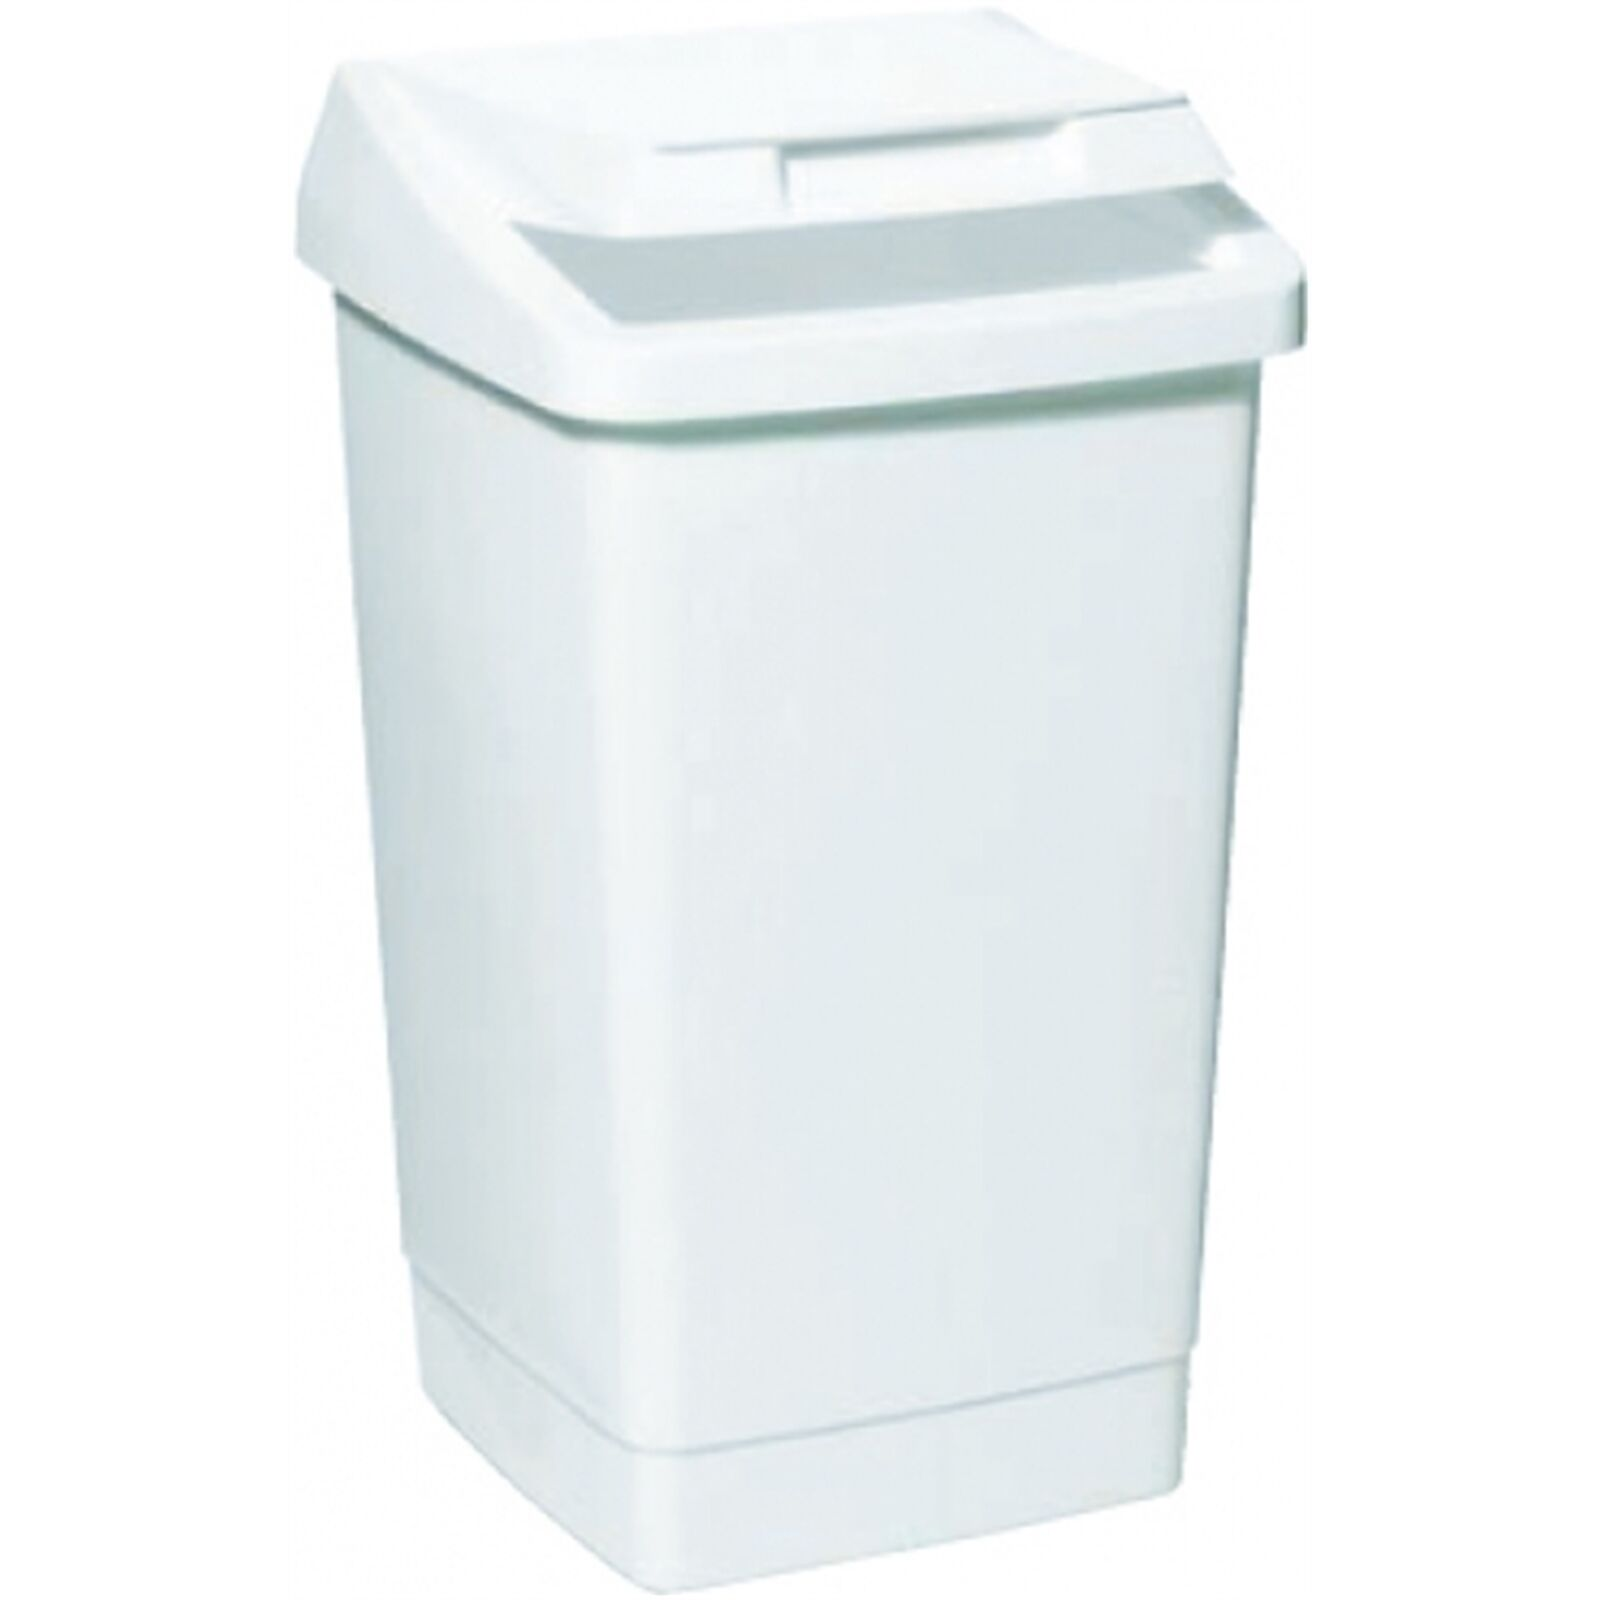 Icon Plastics LIFT TOP TIDY BIN 27L Wide Opening, Weiß, Convenient Aust Made